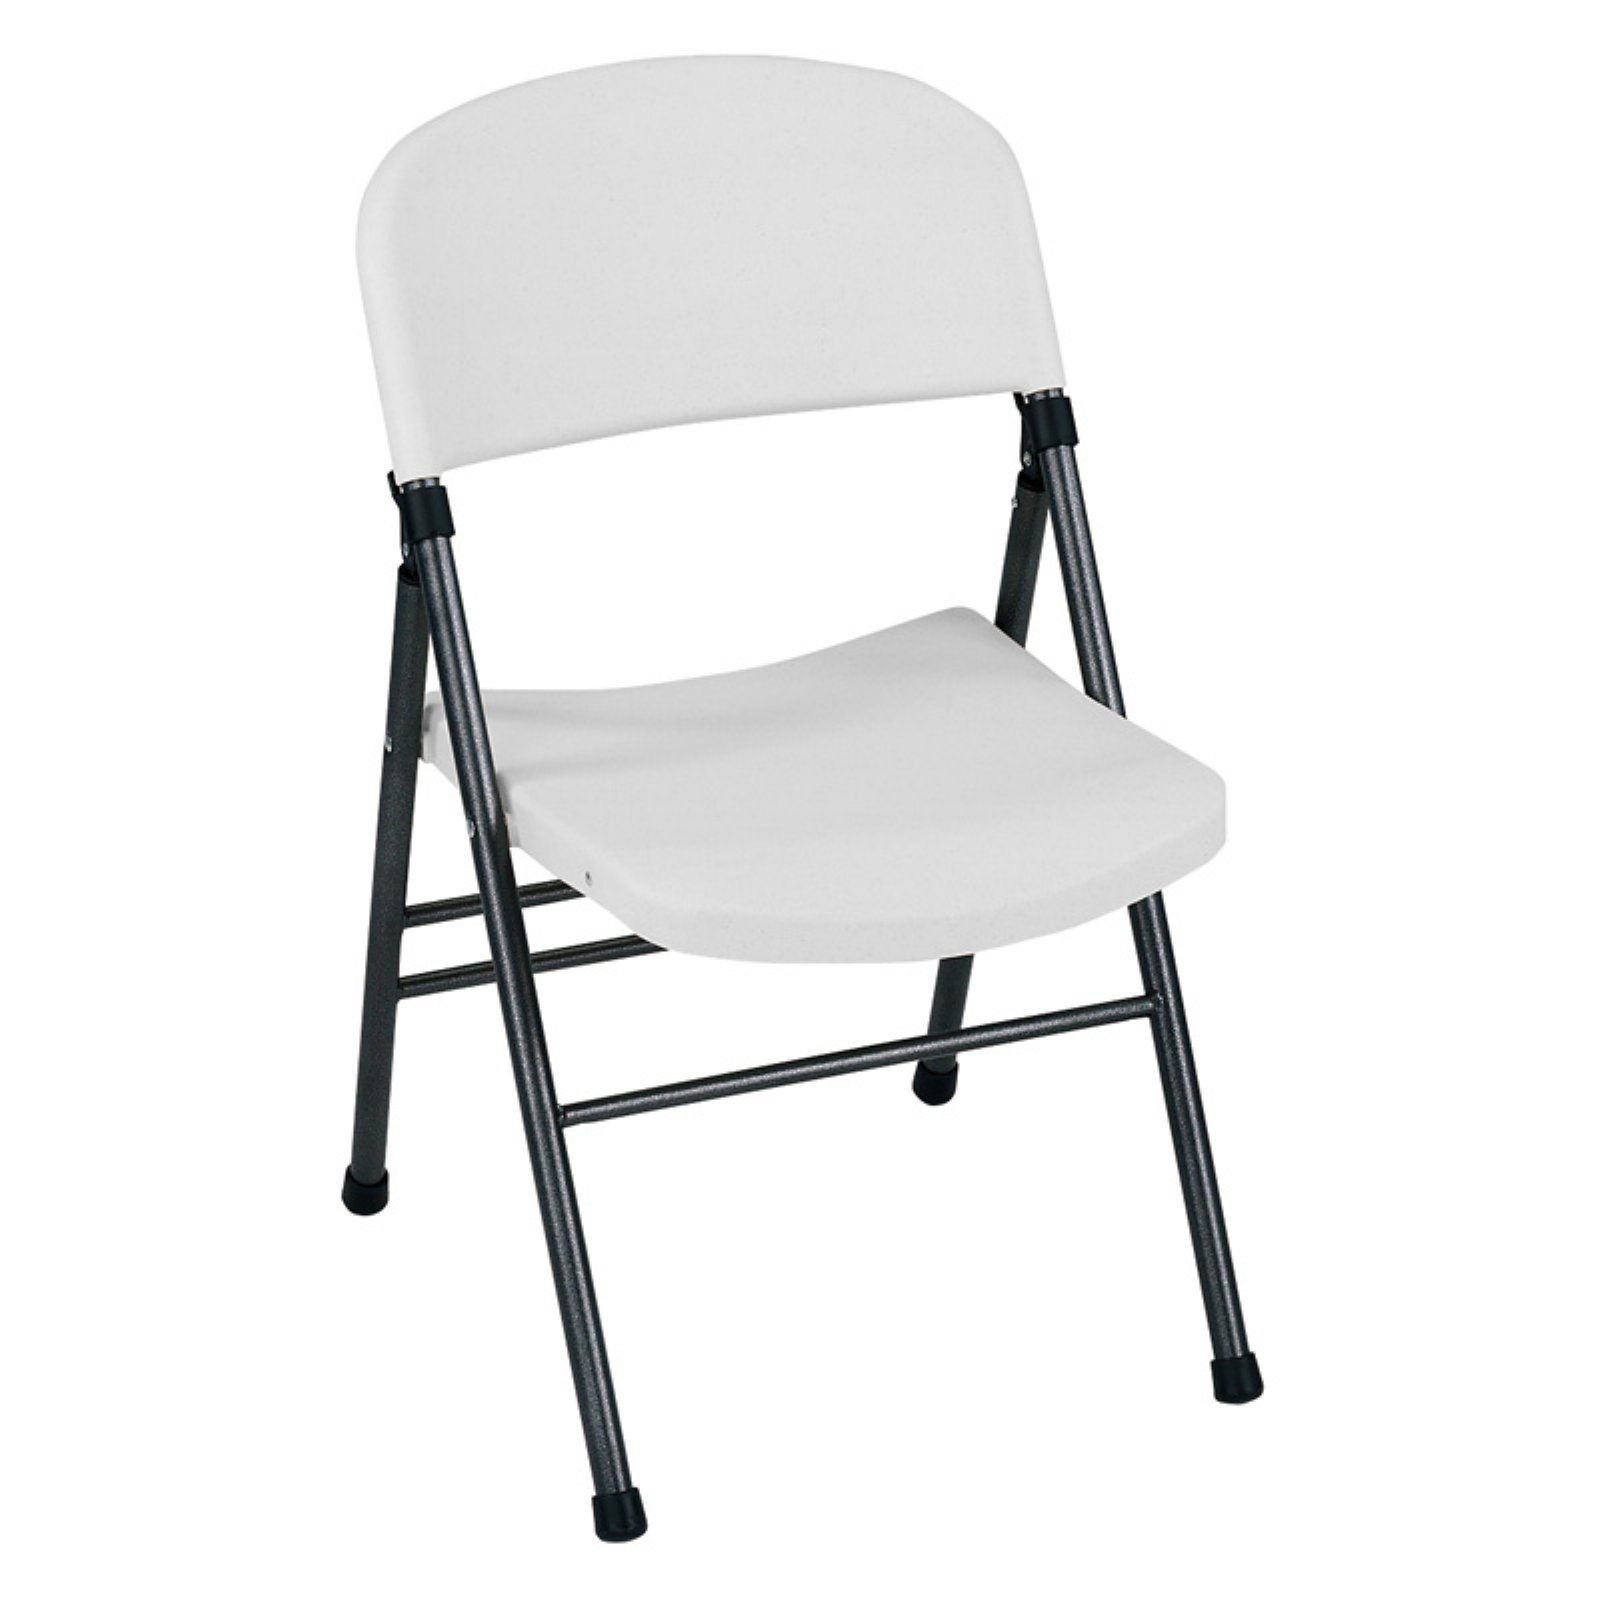 Product Image Cosco Commercial Molded Resin Folding Chair White Set of 4  sc 1 st  Walmart & Folding Tables u0026 Chairs - Walmart.com